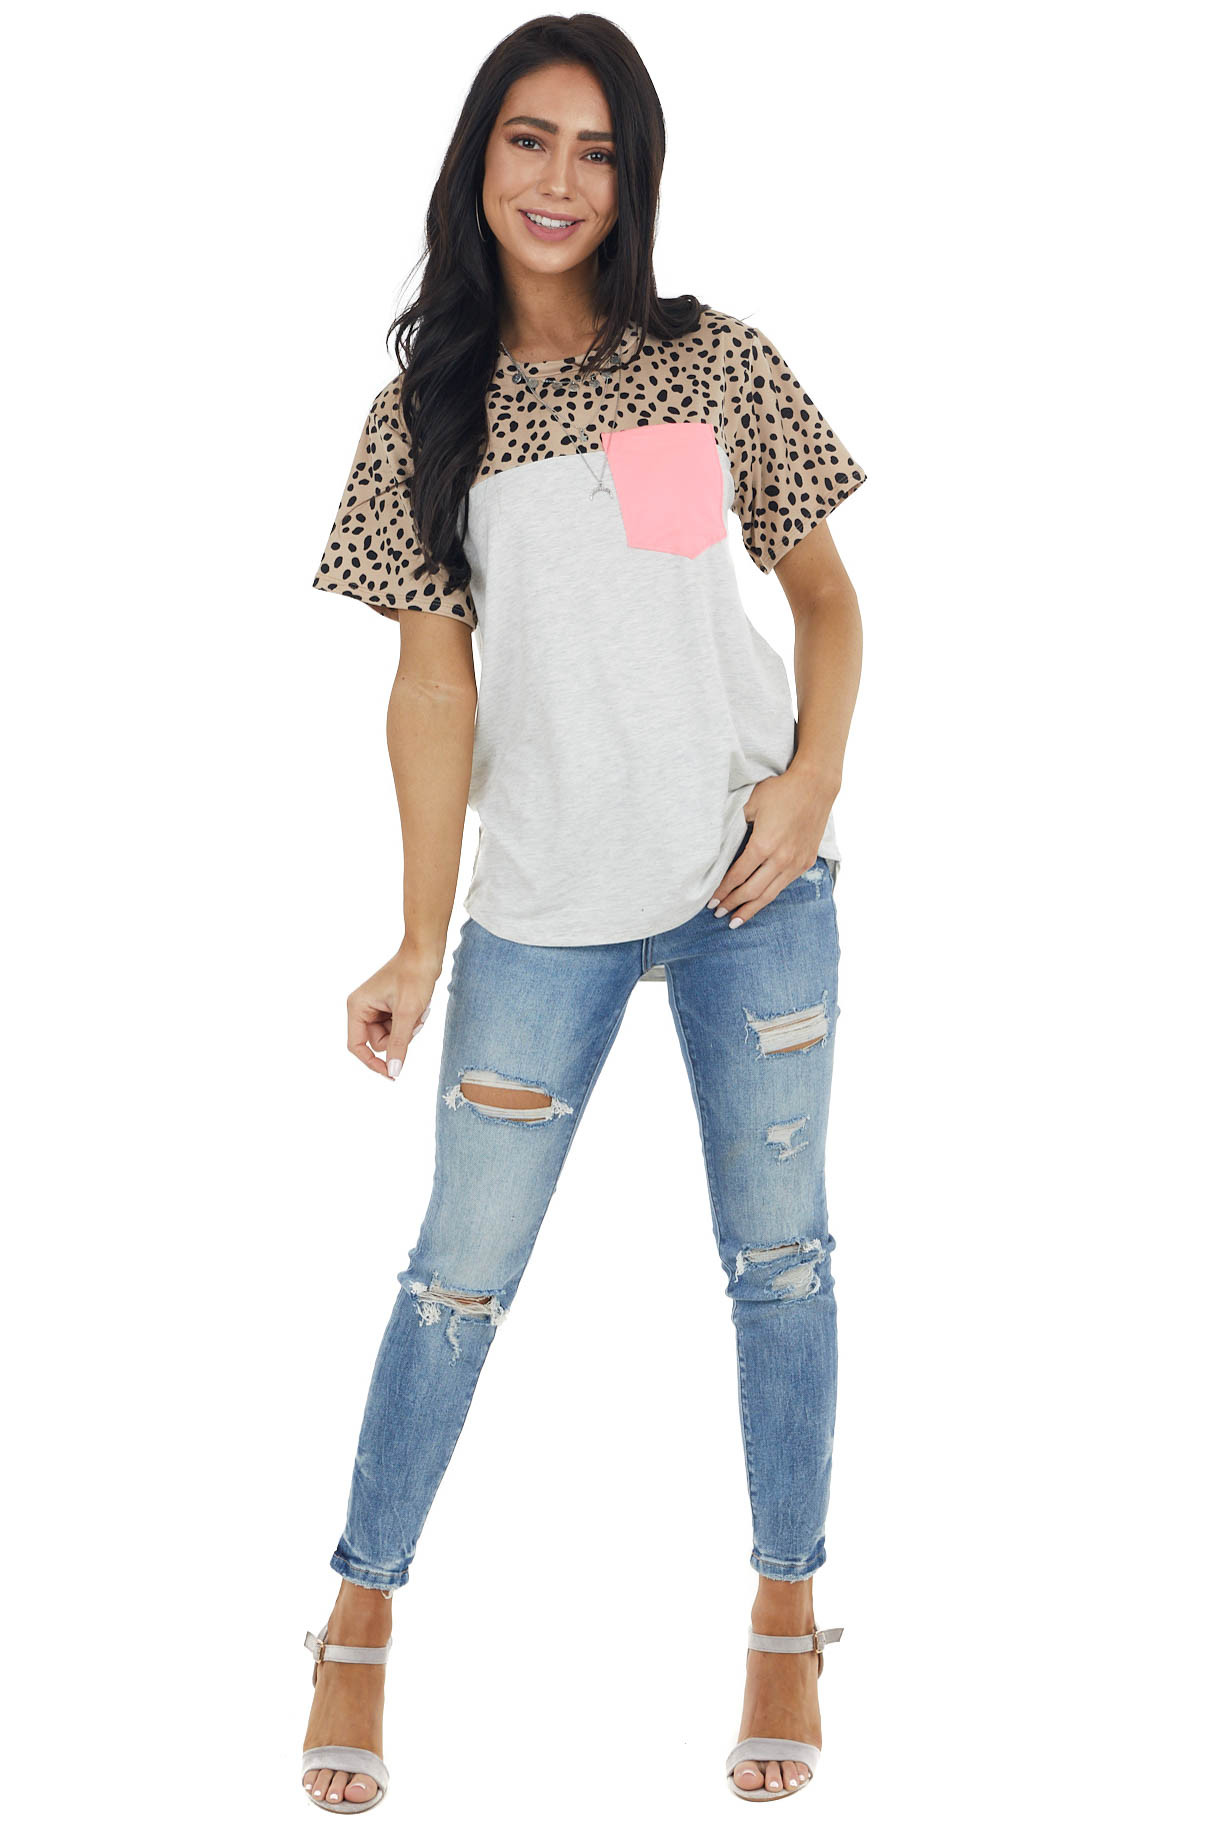 Taupe Cheetah Print Colorblock Top with Neon Pink Pocket